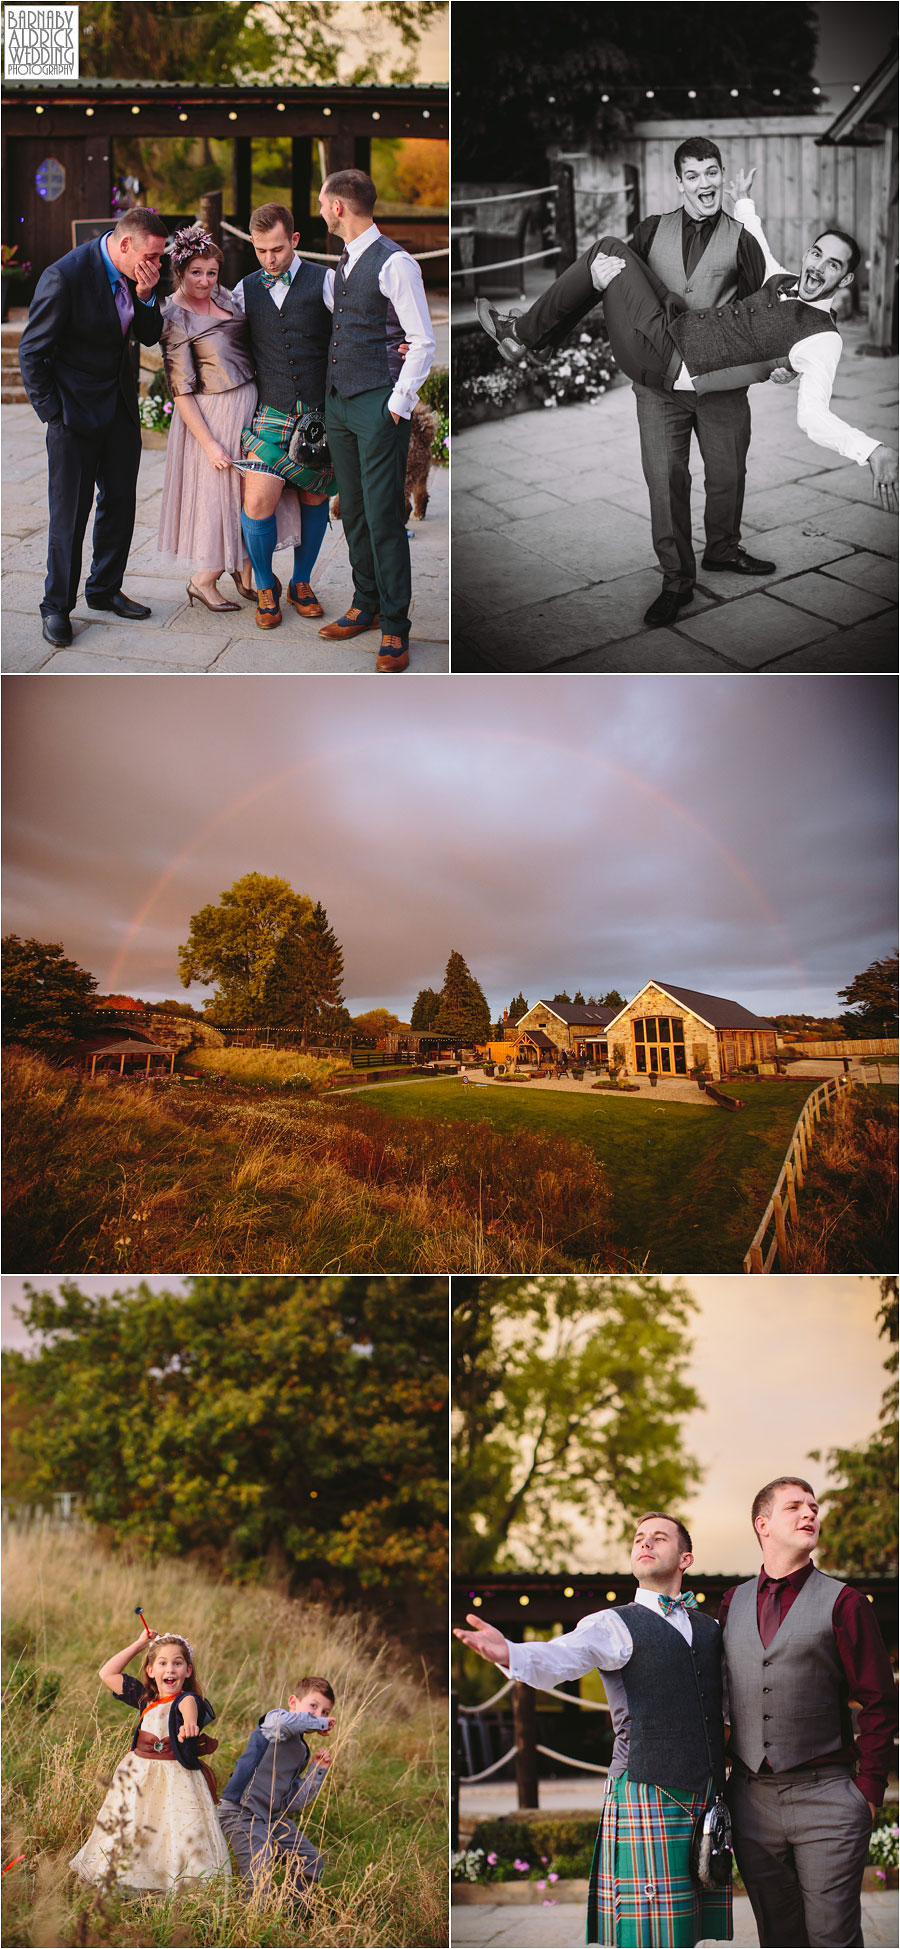 tower-hill-barns-trevor-wales-wedding-photography-45